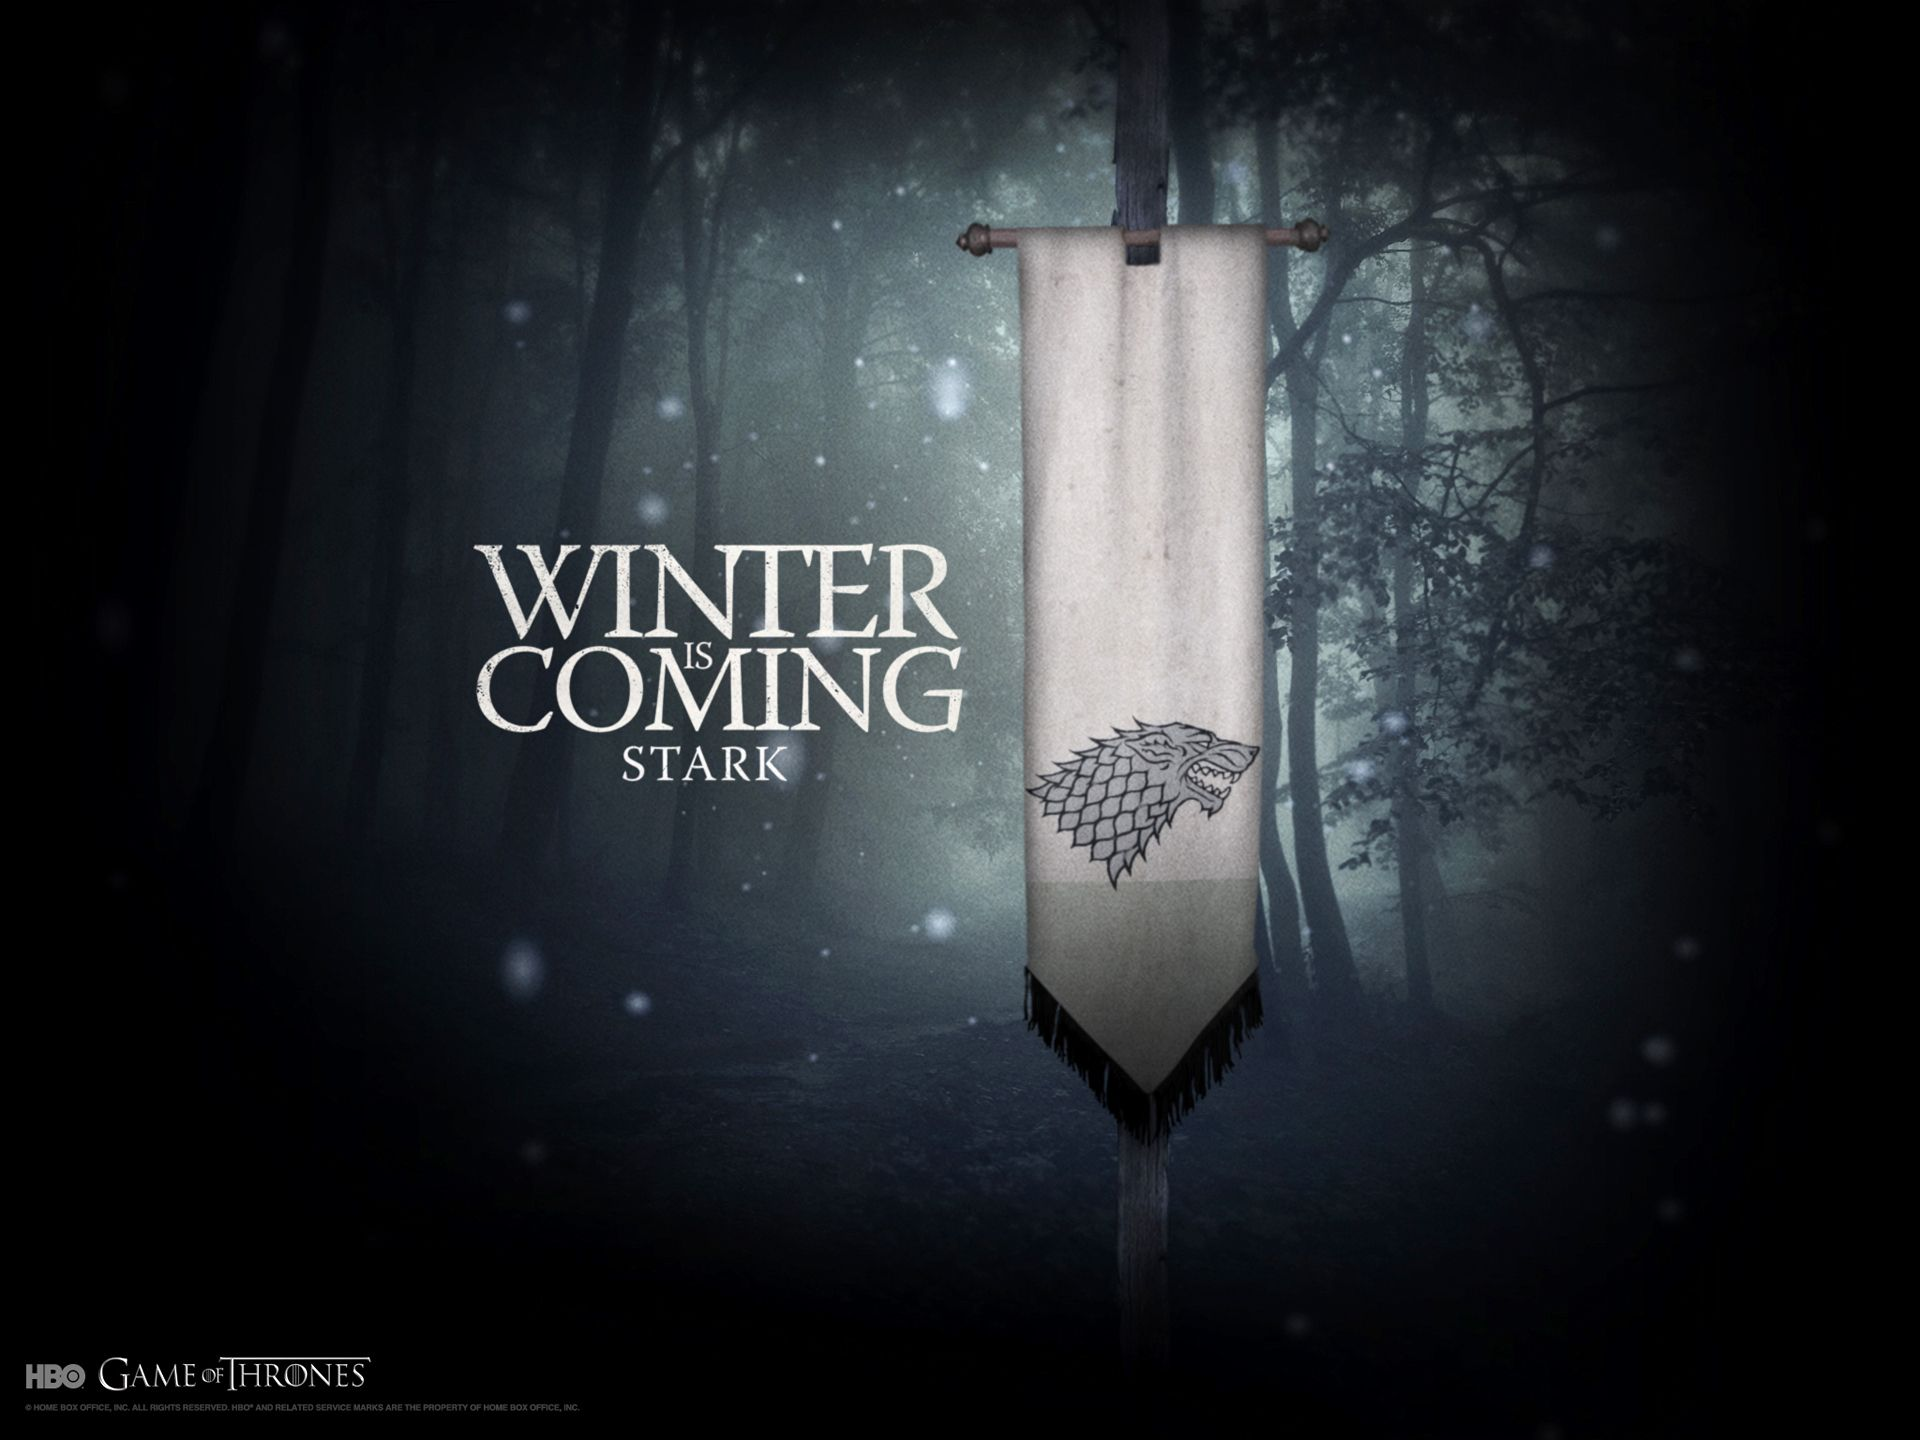 Game Of Thrones Wallpaper House Stark Game Of Thrones Winter Game Of Thrones Poster Hbo Game Of Thrones